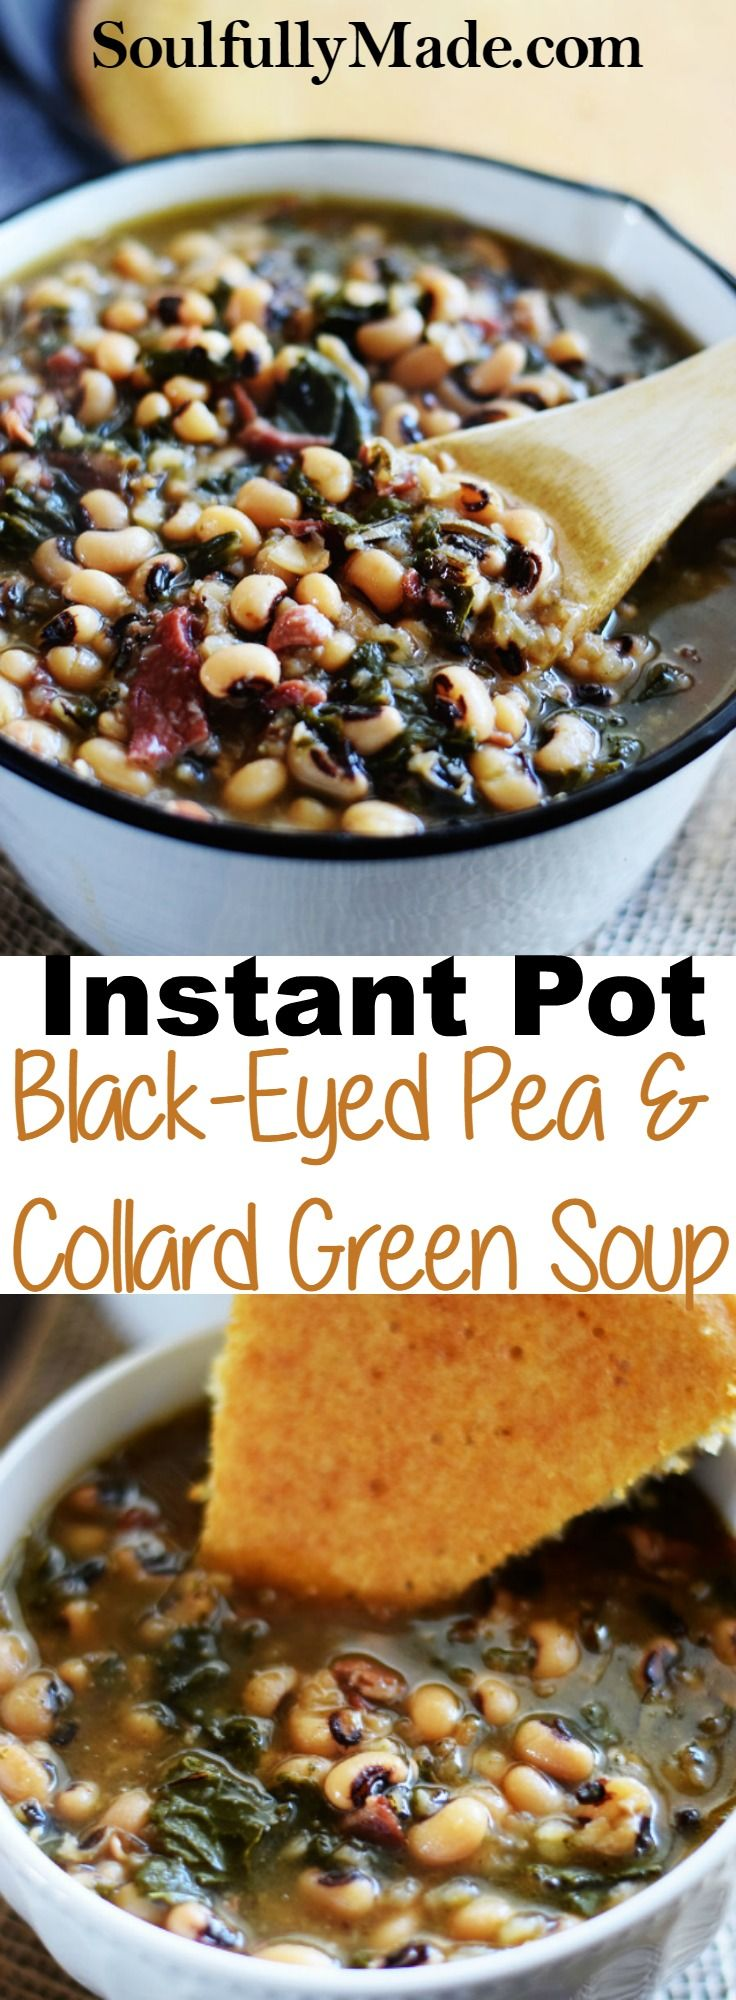 Instant Pot Black-Eyed Pea and Collard Green Soup has all your good luck and deliciousness wrapped up in one pot. A great way to start out the New Year. #BlackEyedPeas #CollardGreens #Soup #NewYear #soulfullymade